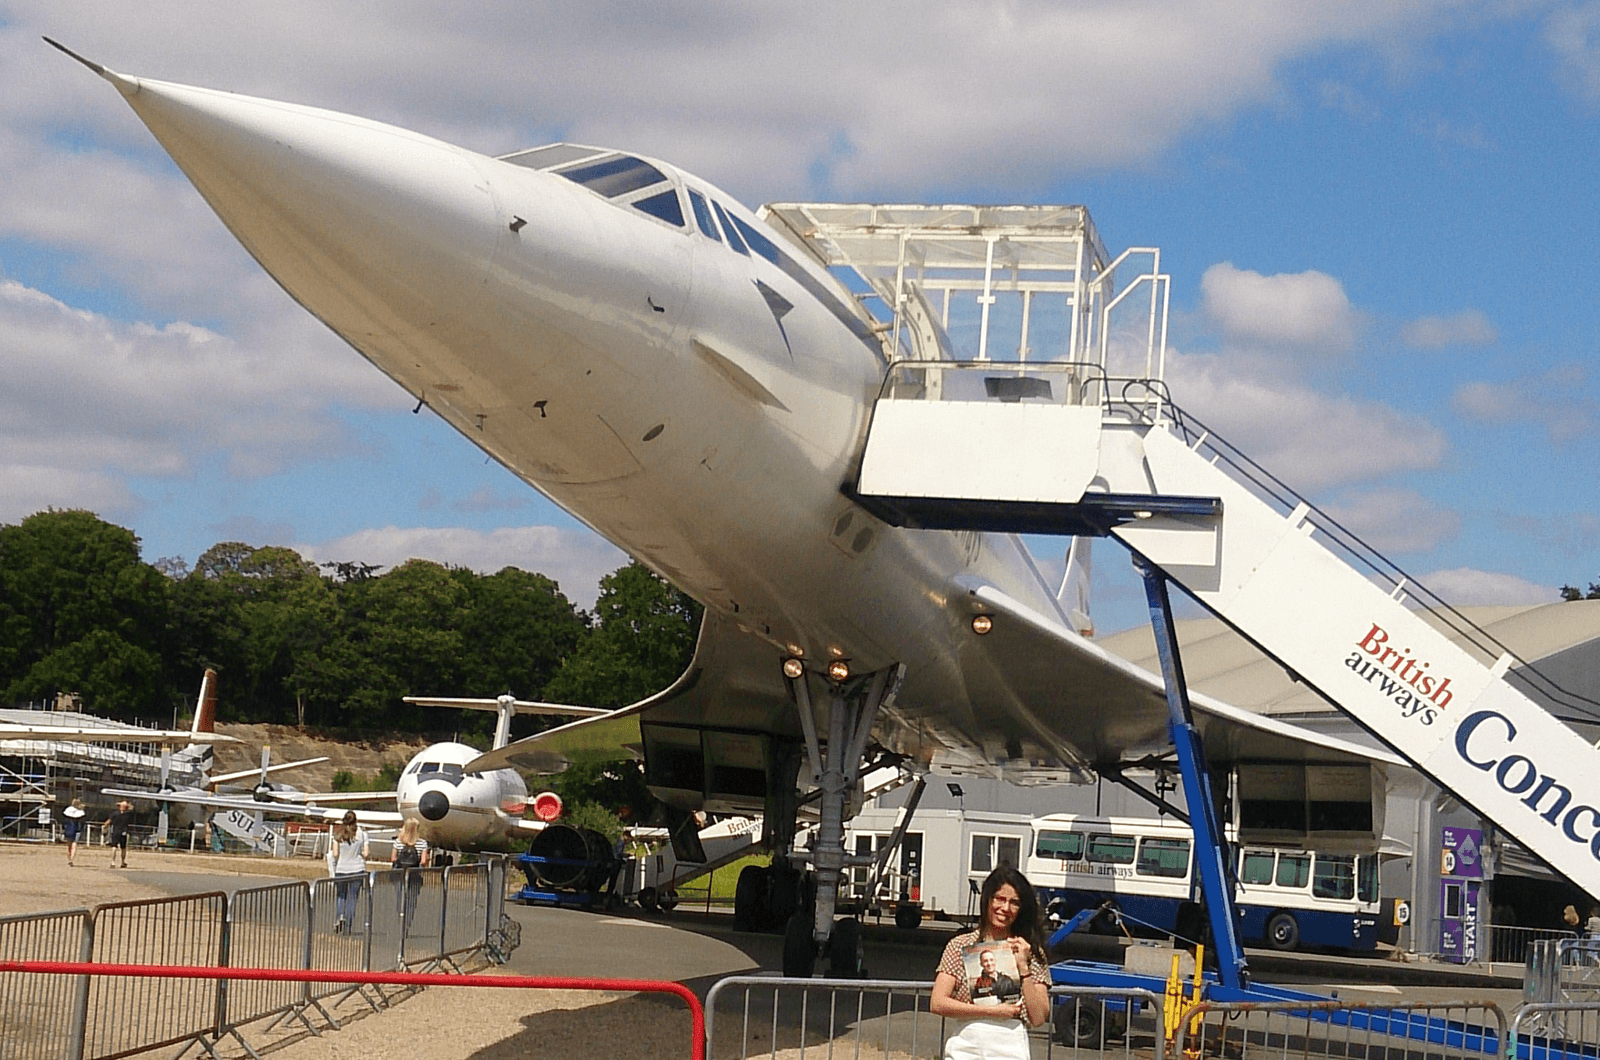 Hadir Alhalali of Clare, Ireland, is an aeronautical engineer, originally from Iraq. She stands in front of the Concorde, one of two commercially operated supersonic passenger airliners that flew from 1976 to 2003. The plane now sits at the Brooklands Museum in Surrey, United Kingdom.